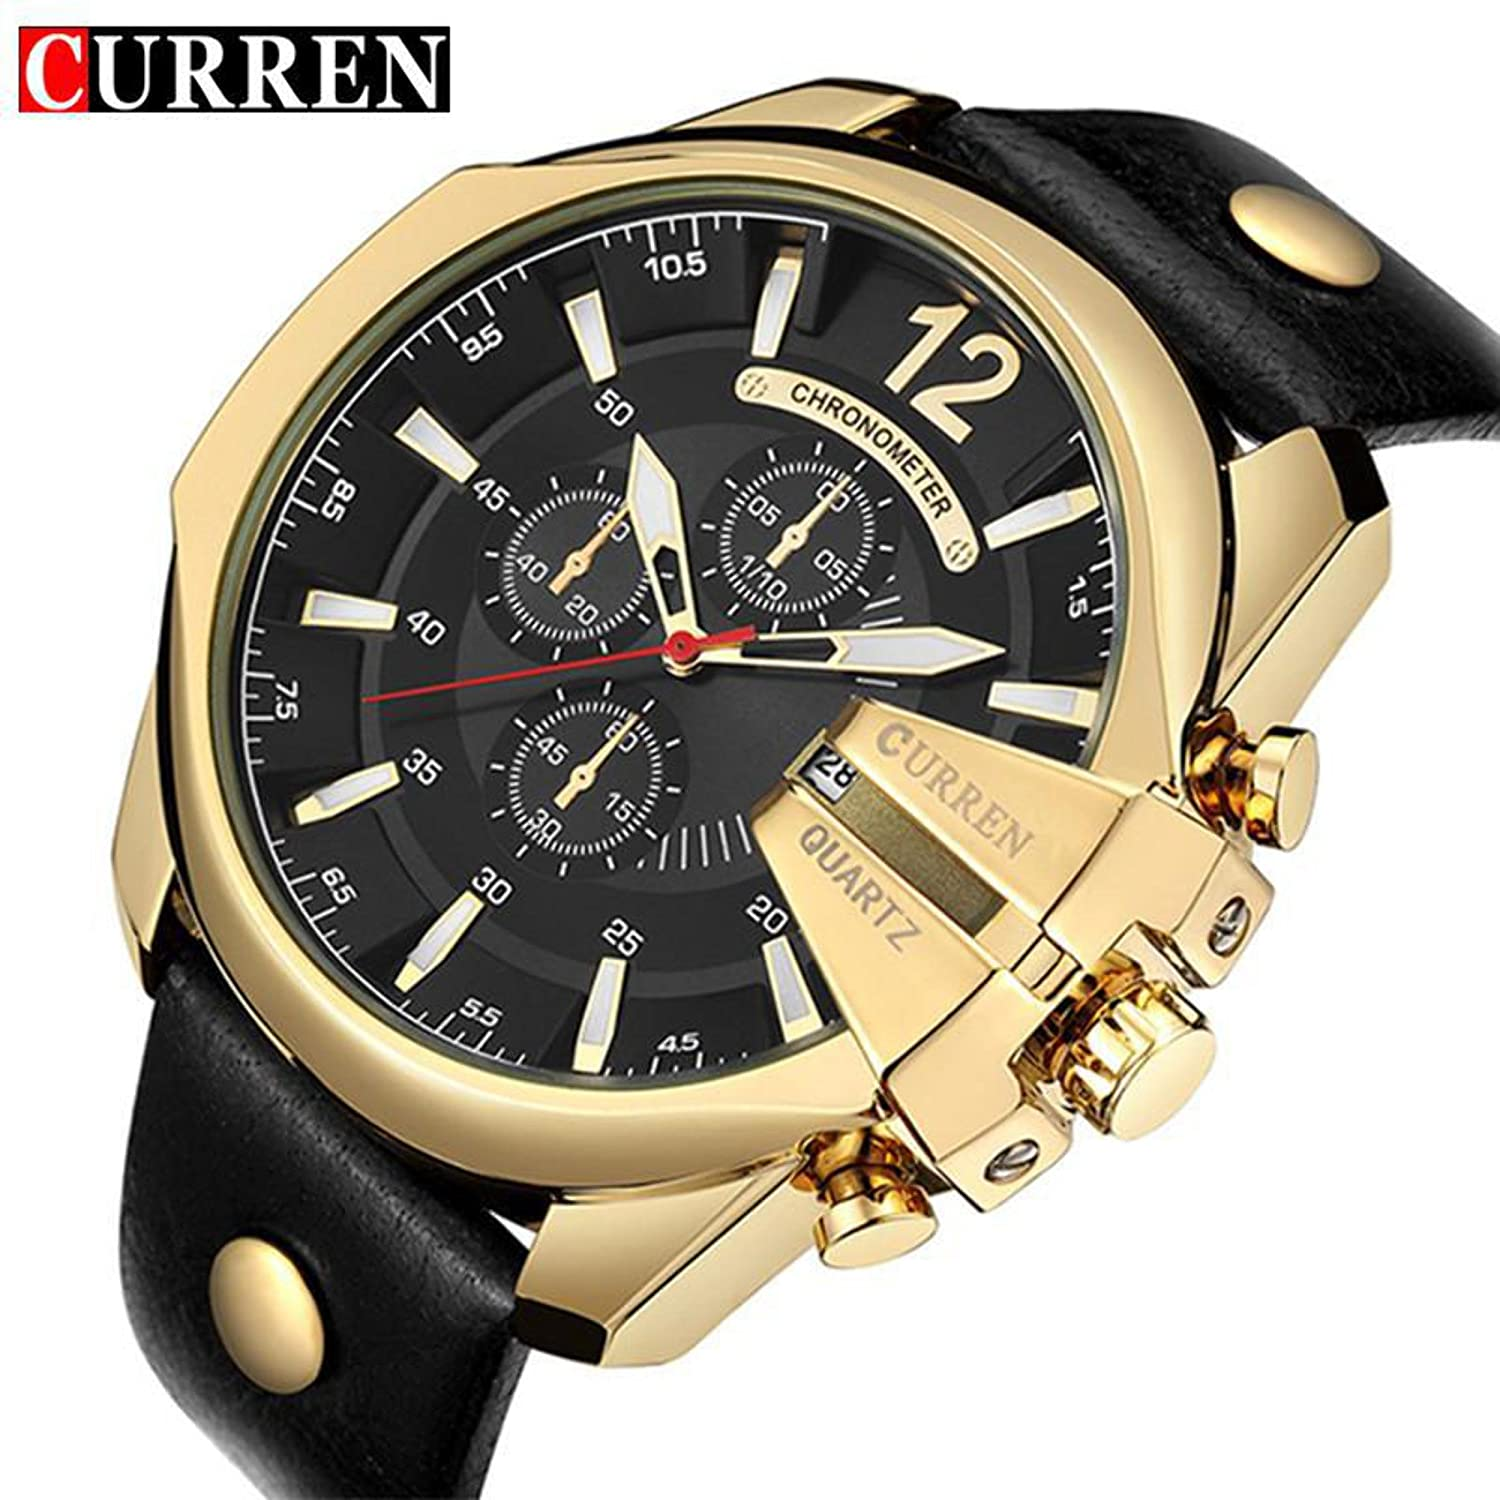 Amazon.com : CURREN Mens Sports Quartz Watch Men Top Brand Luxury Designer Watch Man Quartz Gold Clock male Fashion Relogio Masculino Date : Everything ...